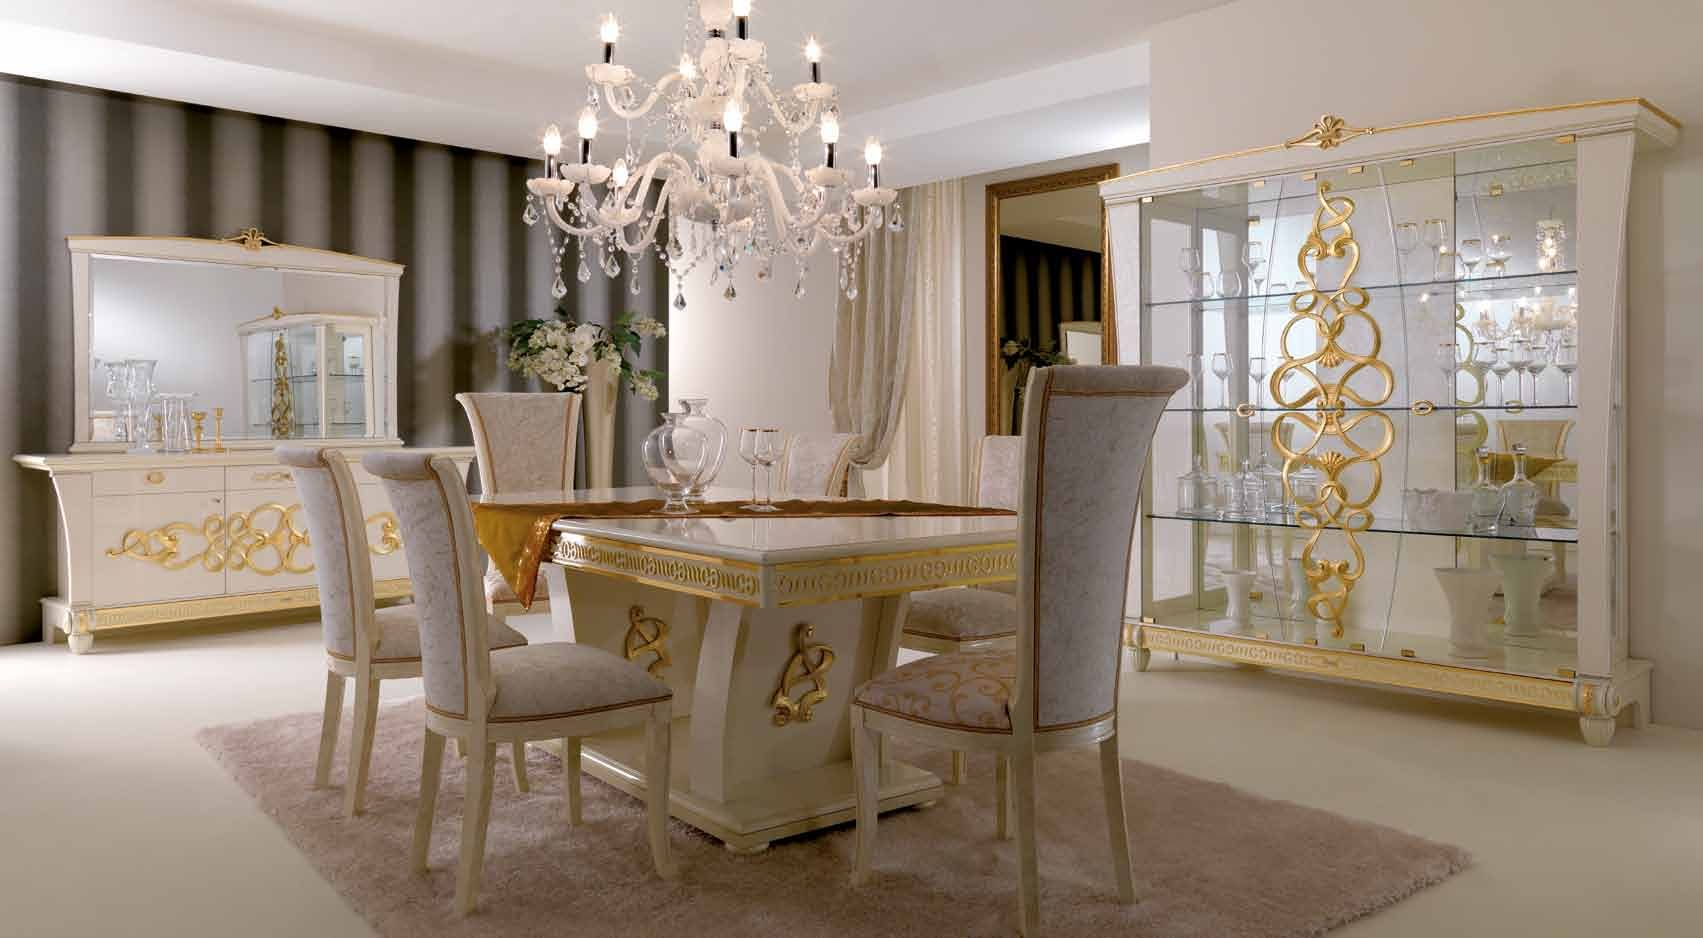 Beautiful Luxury White Dining Room Design With Luxury Rectangle White Table That Have  Gold Scheme And Vintage White Chairs On The Soft White Rug Also Luxurious  White ...